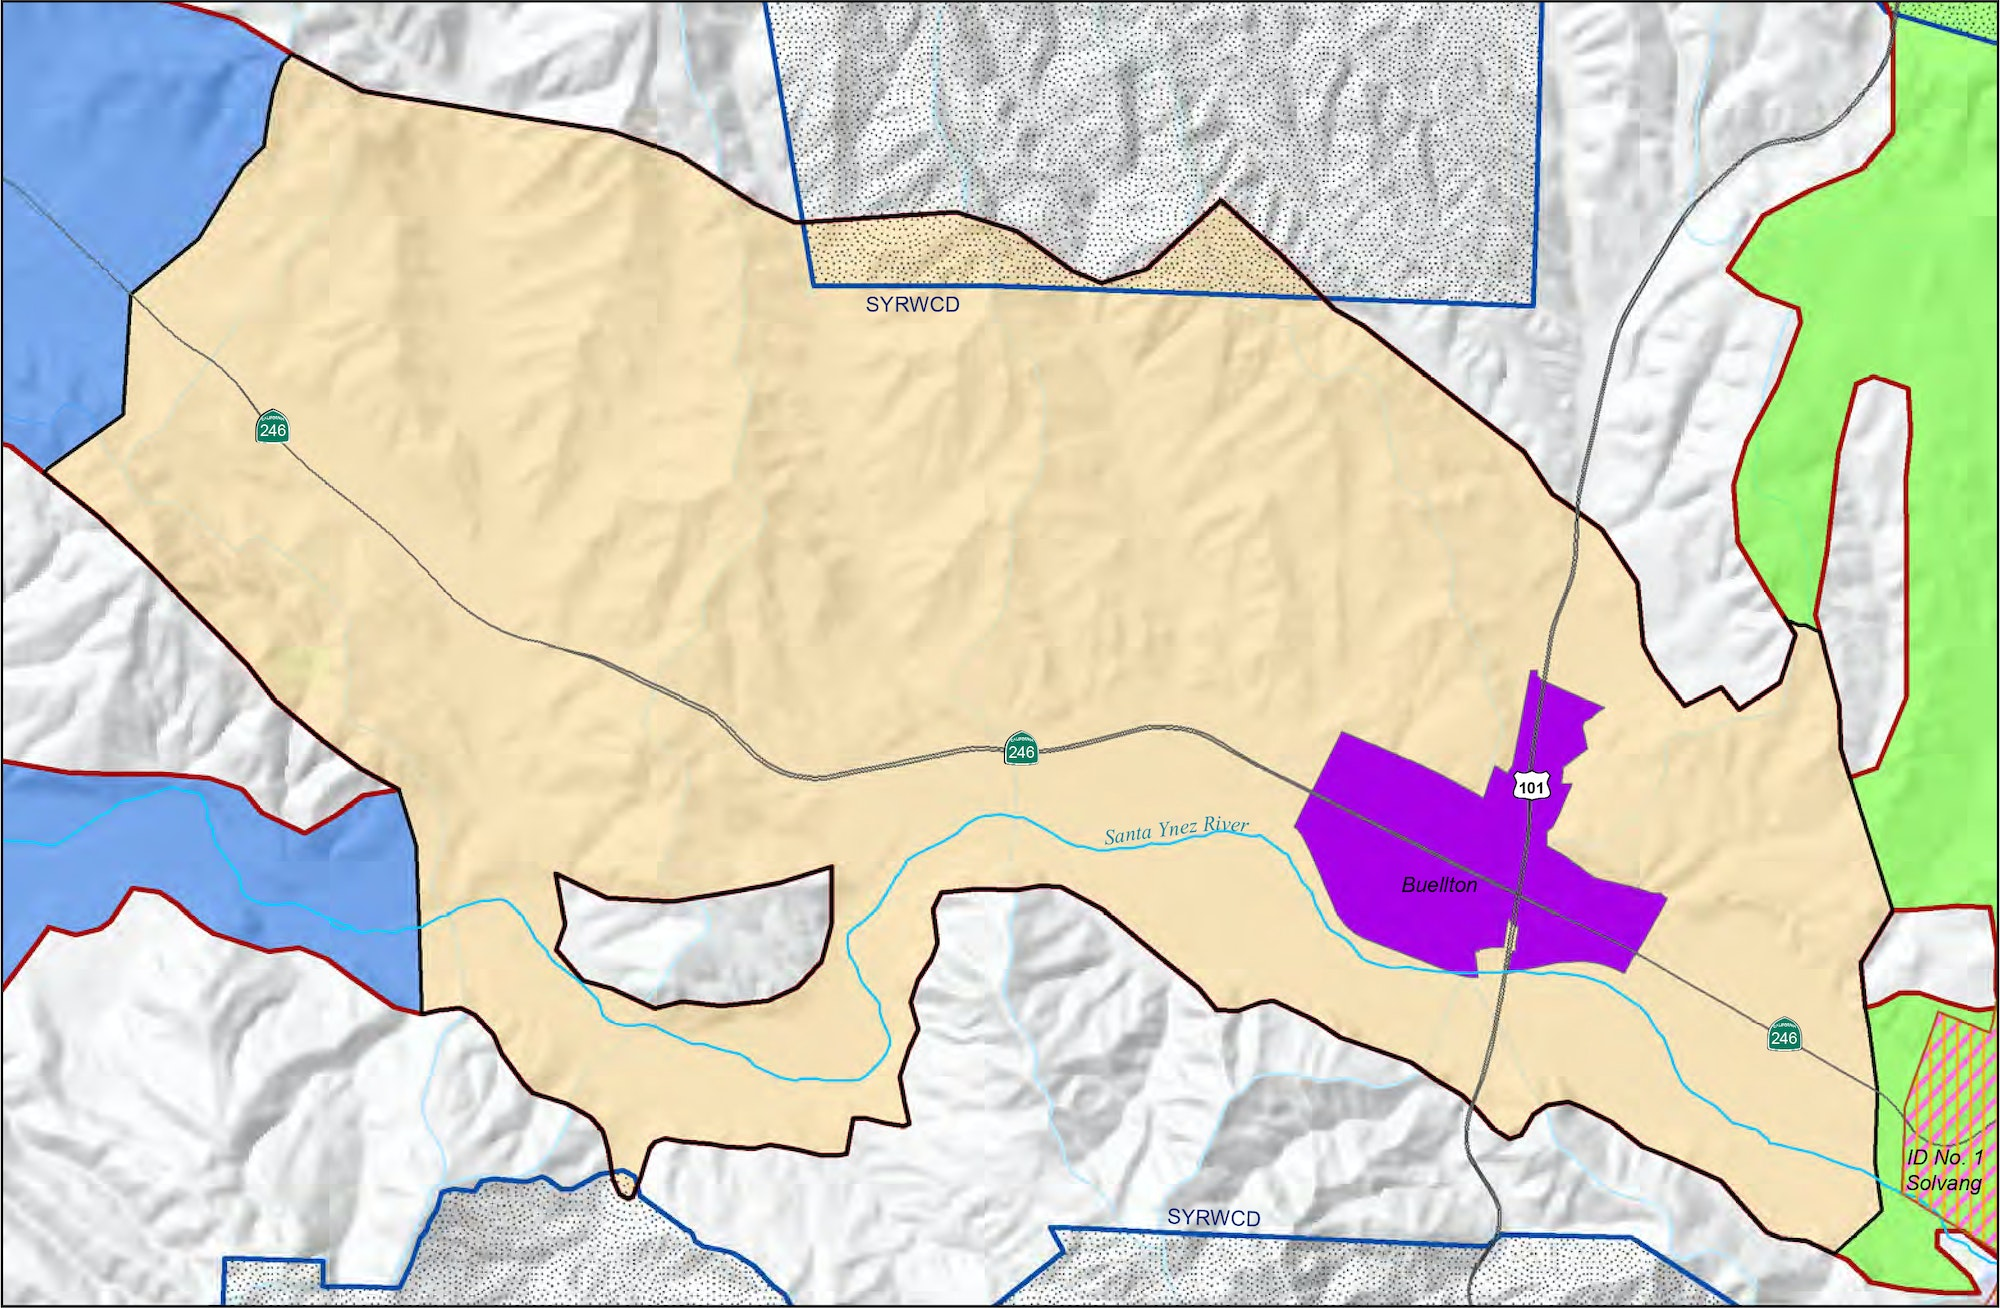 Map of the Central Management Area of the Santa Ynez River Valley Groundwater Basin